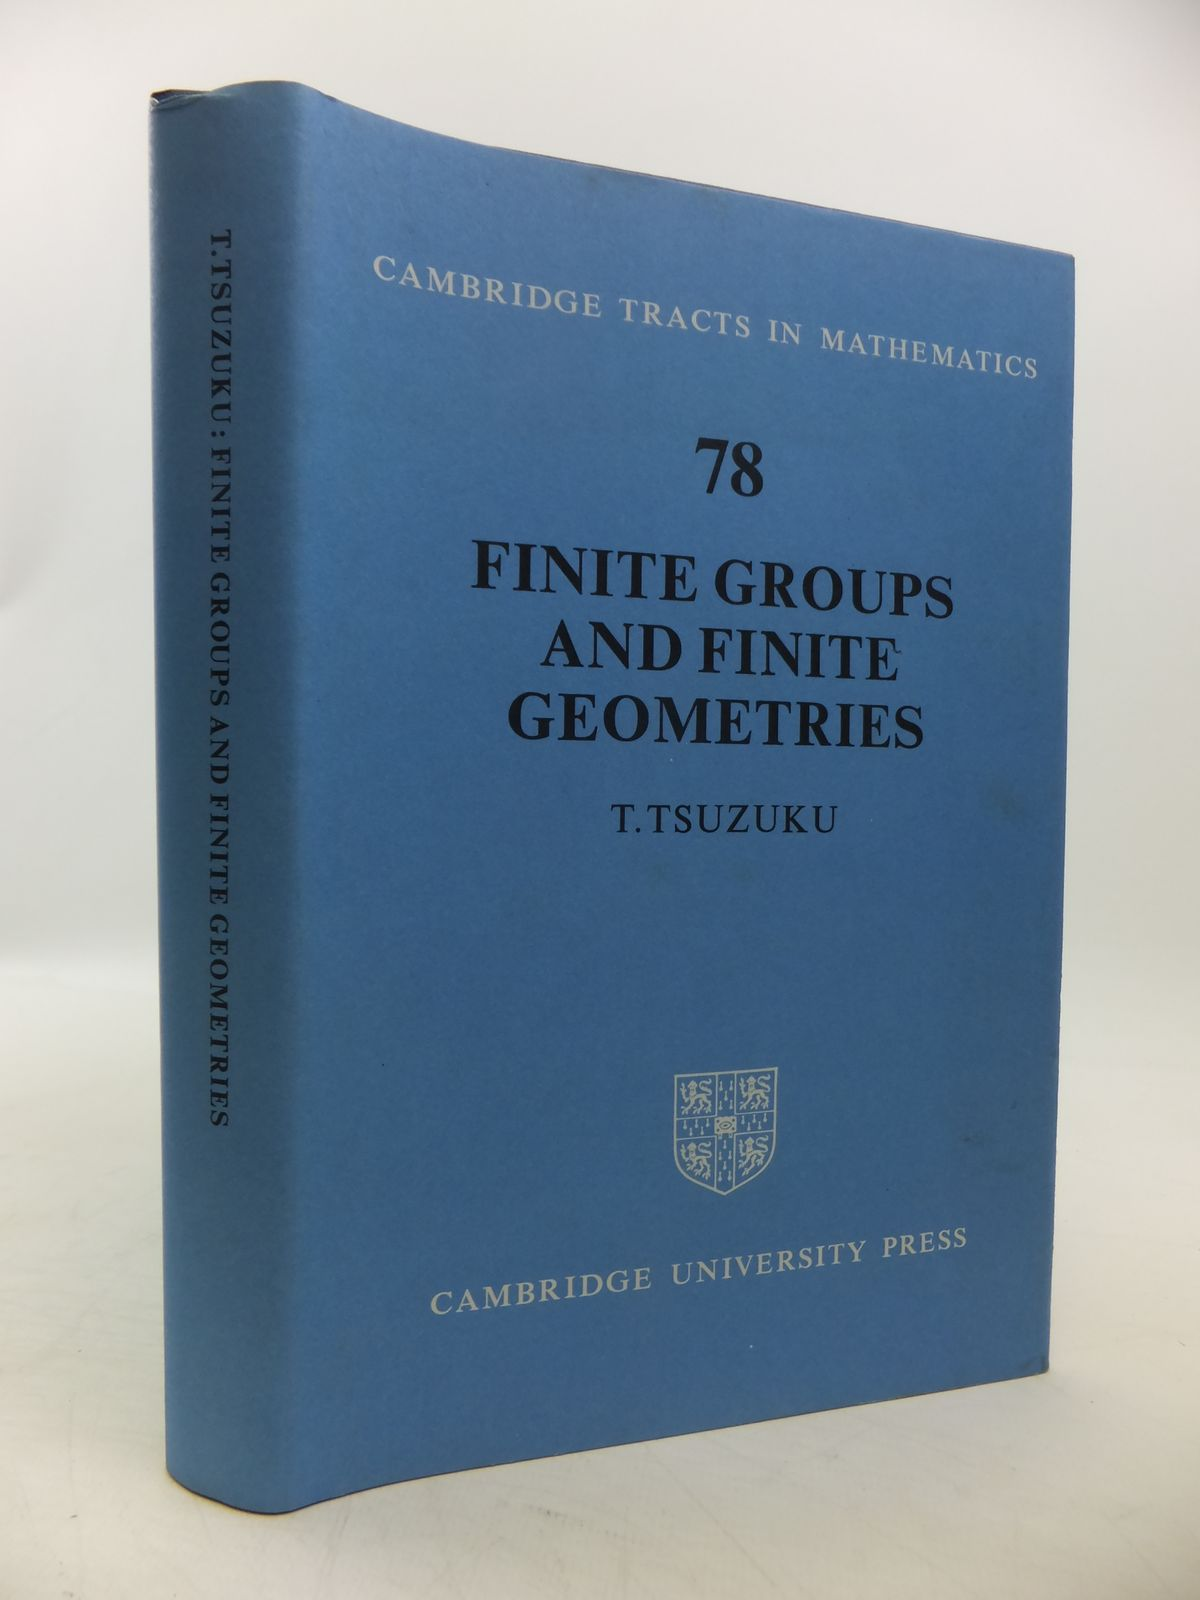 Photo of FINITE GROUPS AND FINITE GEOMETRIES written by Tsuzuku, T. published by Cambridge University Press (STOCK CODE: 1811310)  for sale by Stella & Rose's Books